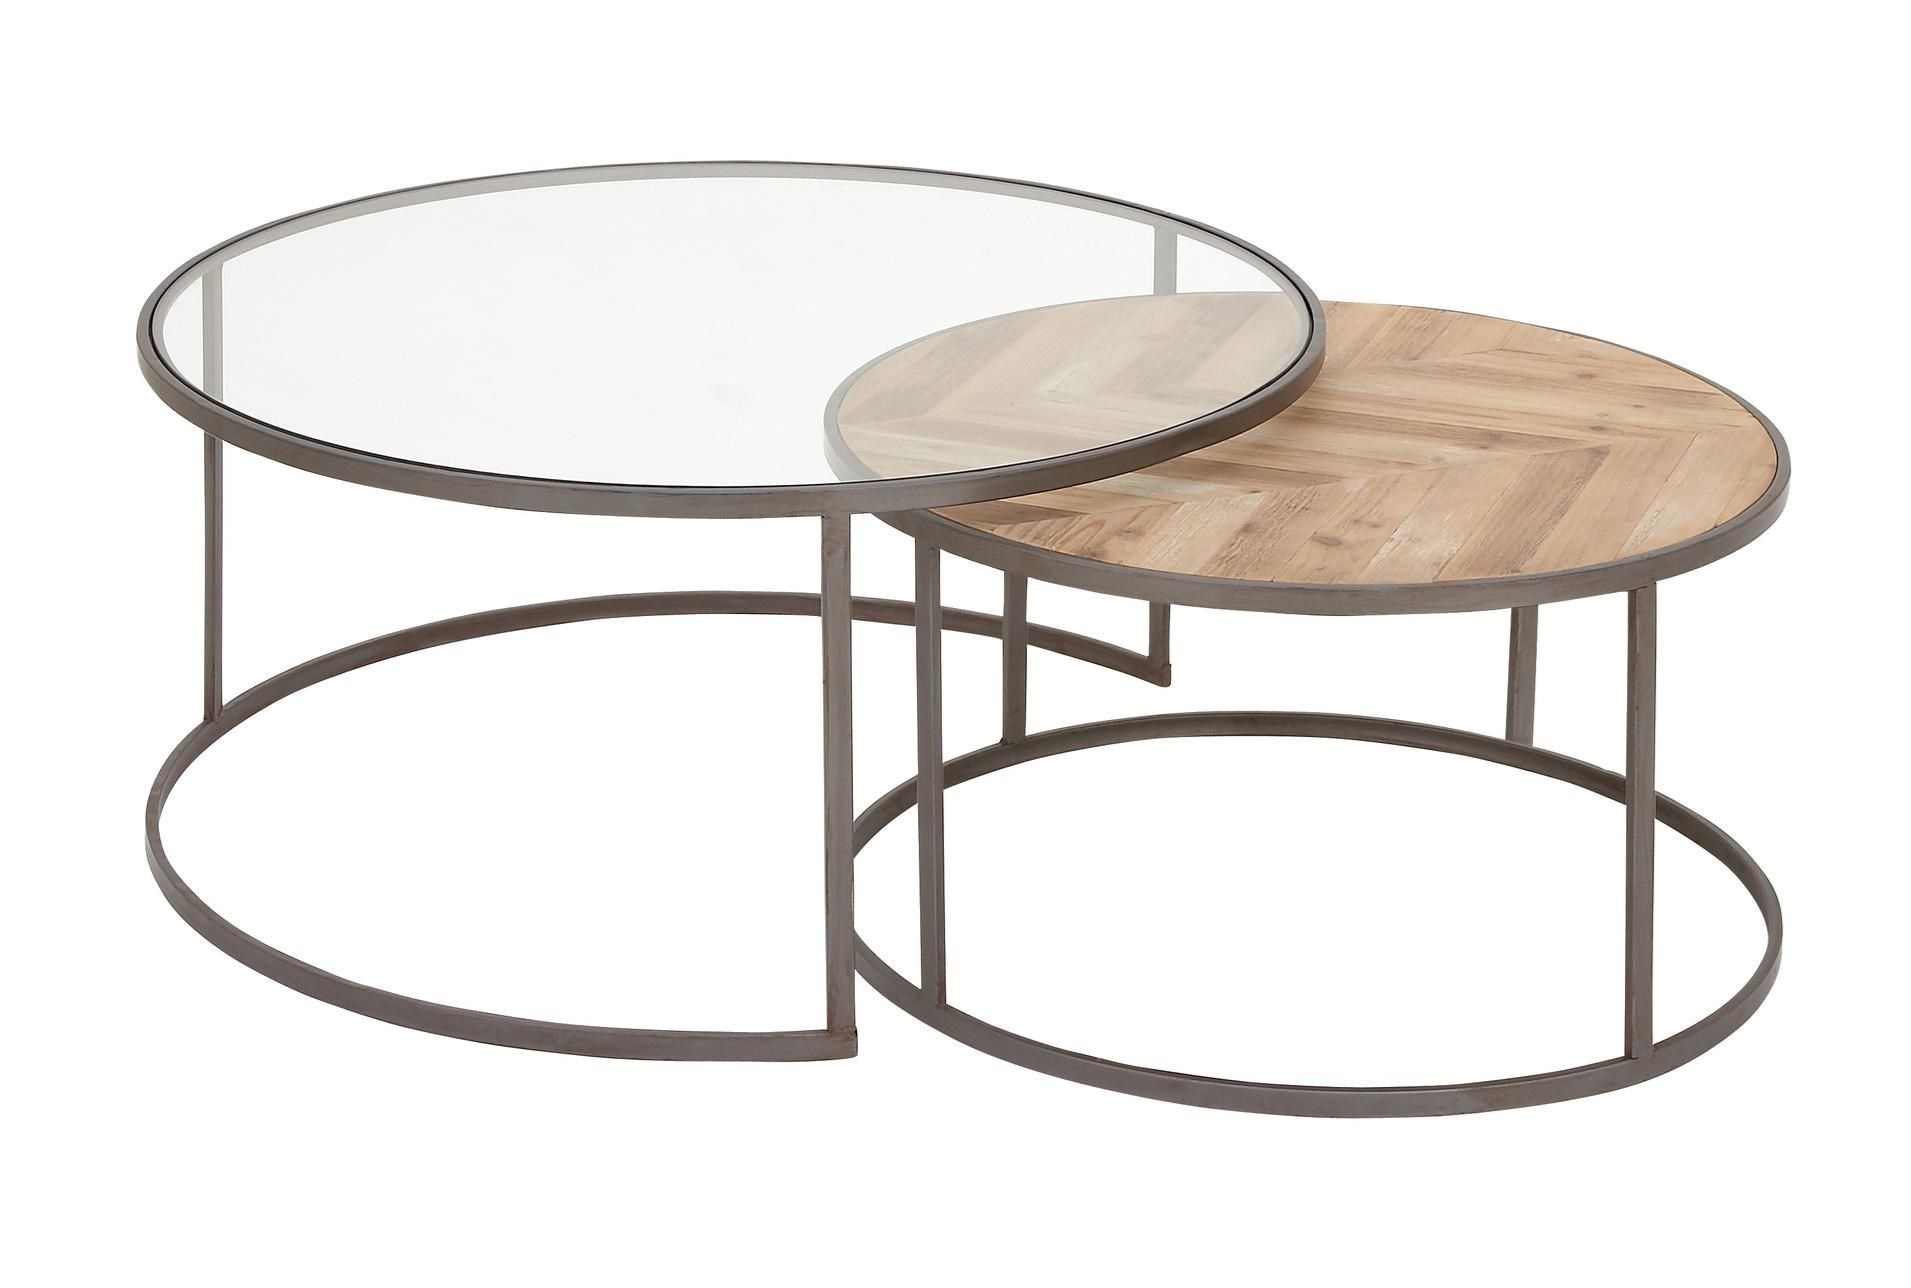 2 piece glass and wood nesting coffee table in 2020